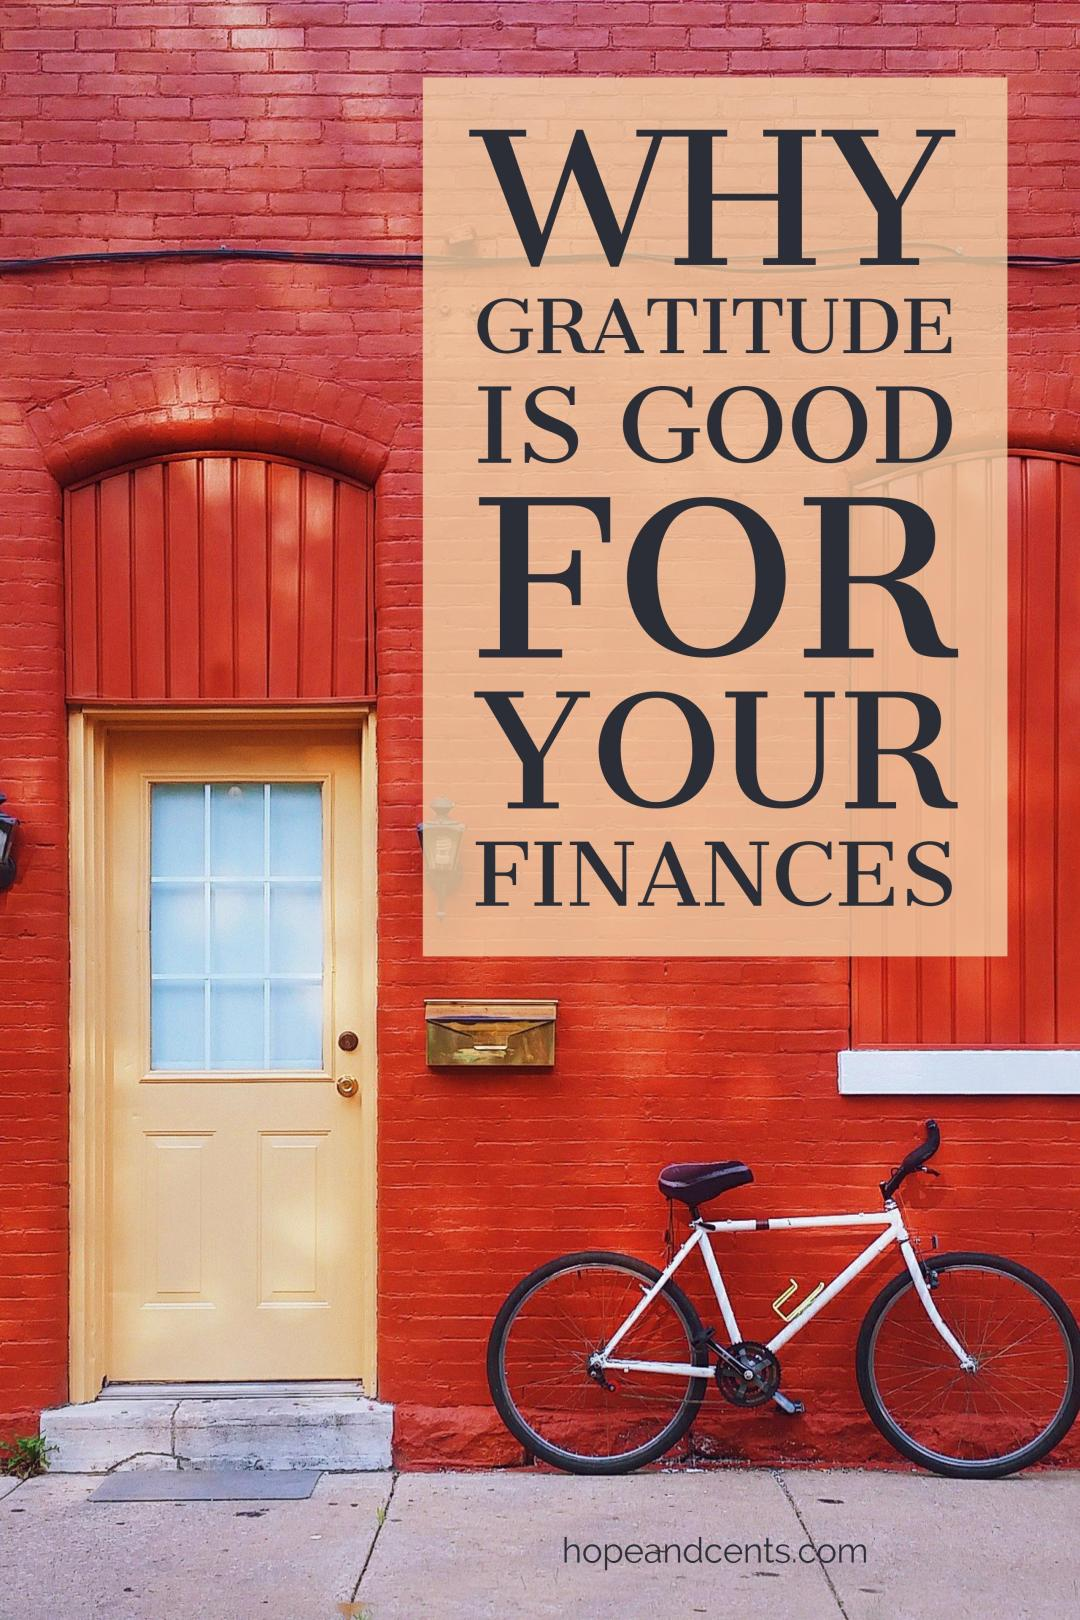 Love this gratitude challenge! Focusing on what you have to be grateful for is good for your finances and necessary if you're living a frugal and debt-free life.